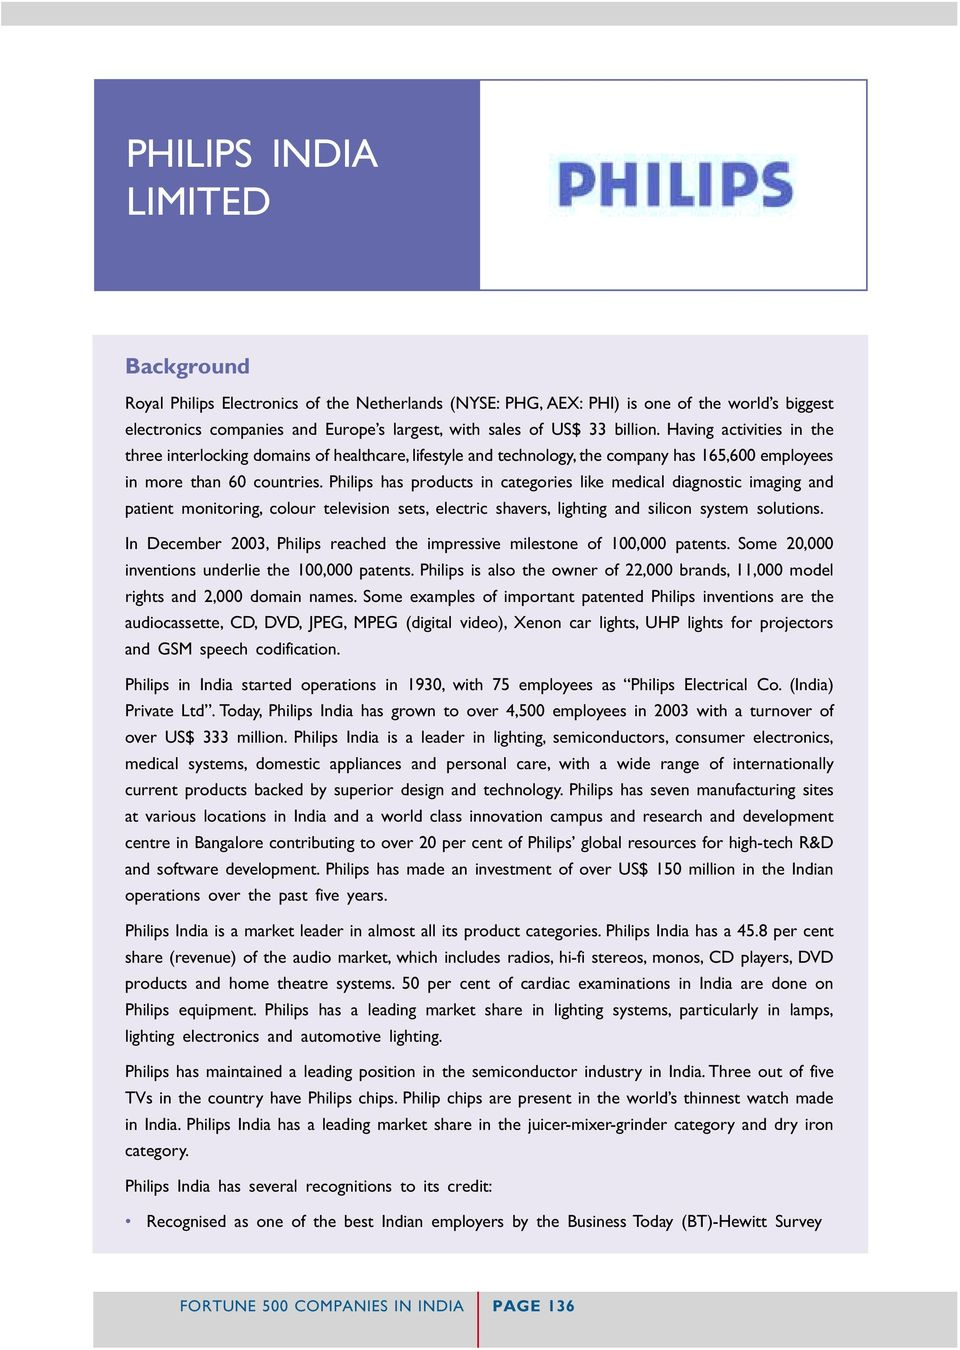 PHILIPS INDIA LIMITED - PDF